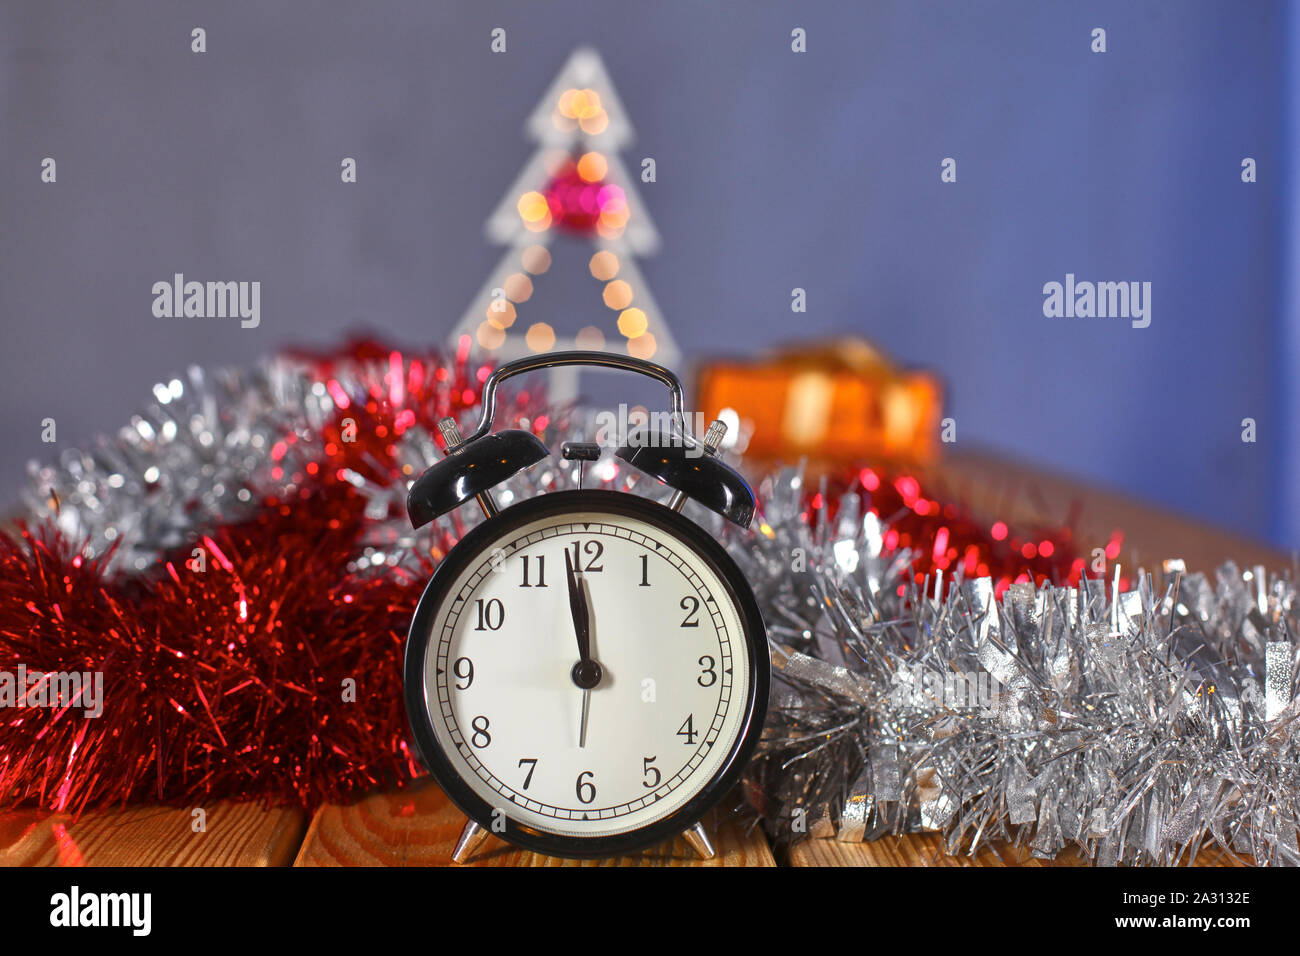 Christmas Alarm Clock With Pine Branches And Decorations Christmas Timer Time To Celebrate Stock Photo Alamy